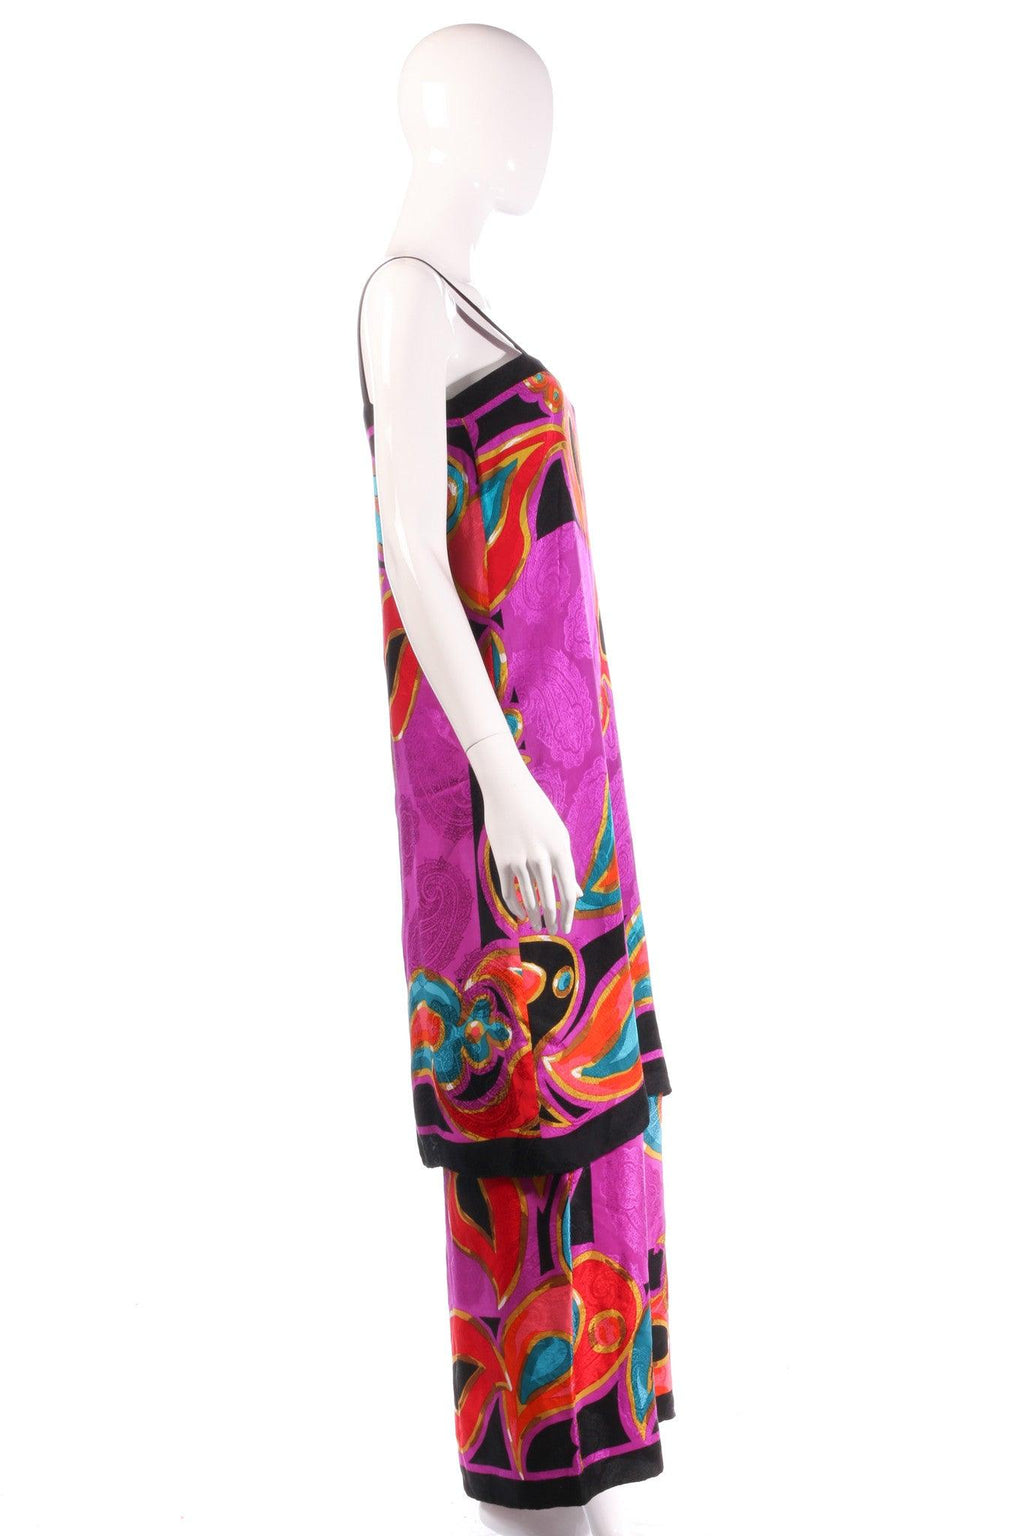 Brijo purple patterned dress, with additional top side